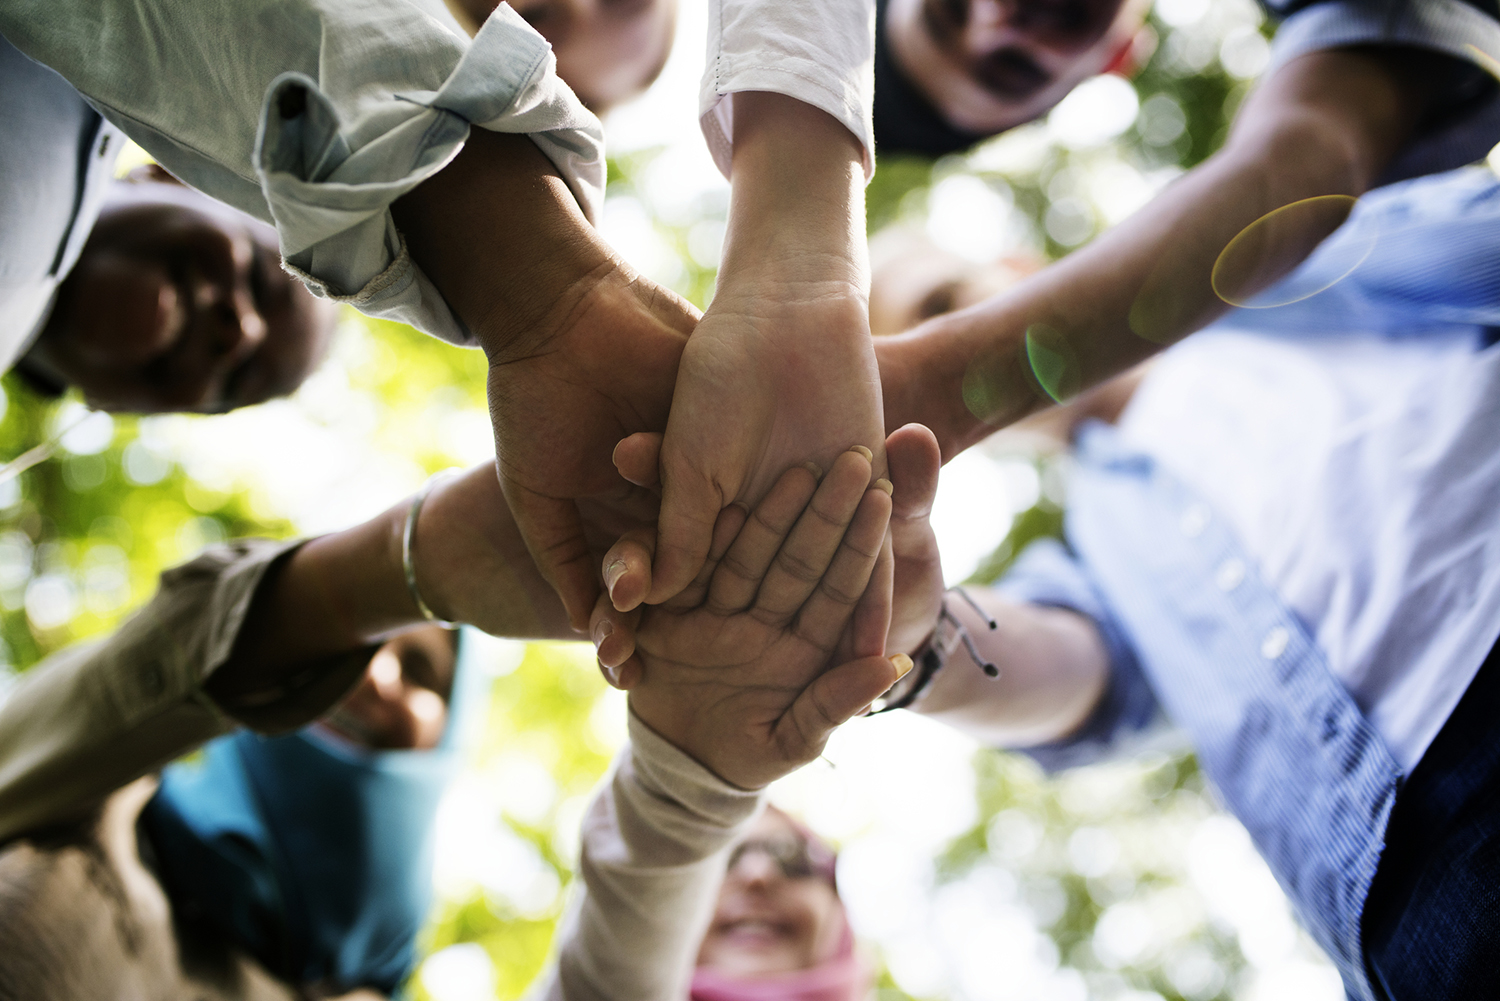 Team of young adults engage in a hand huddle.